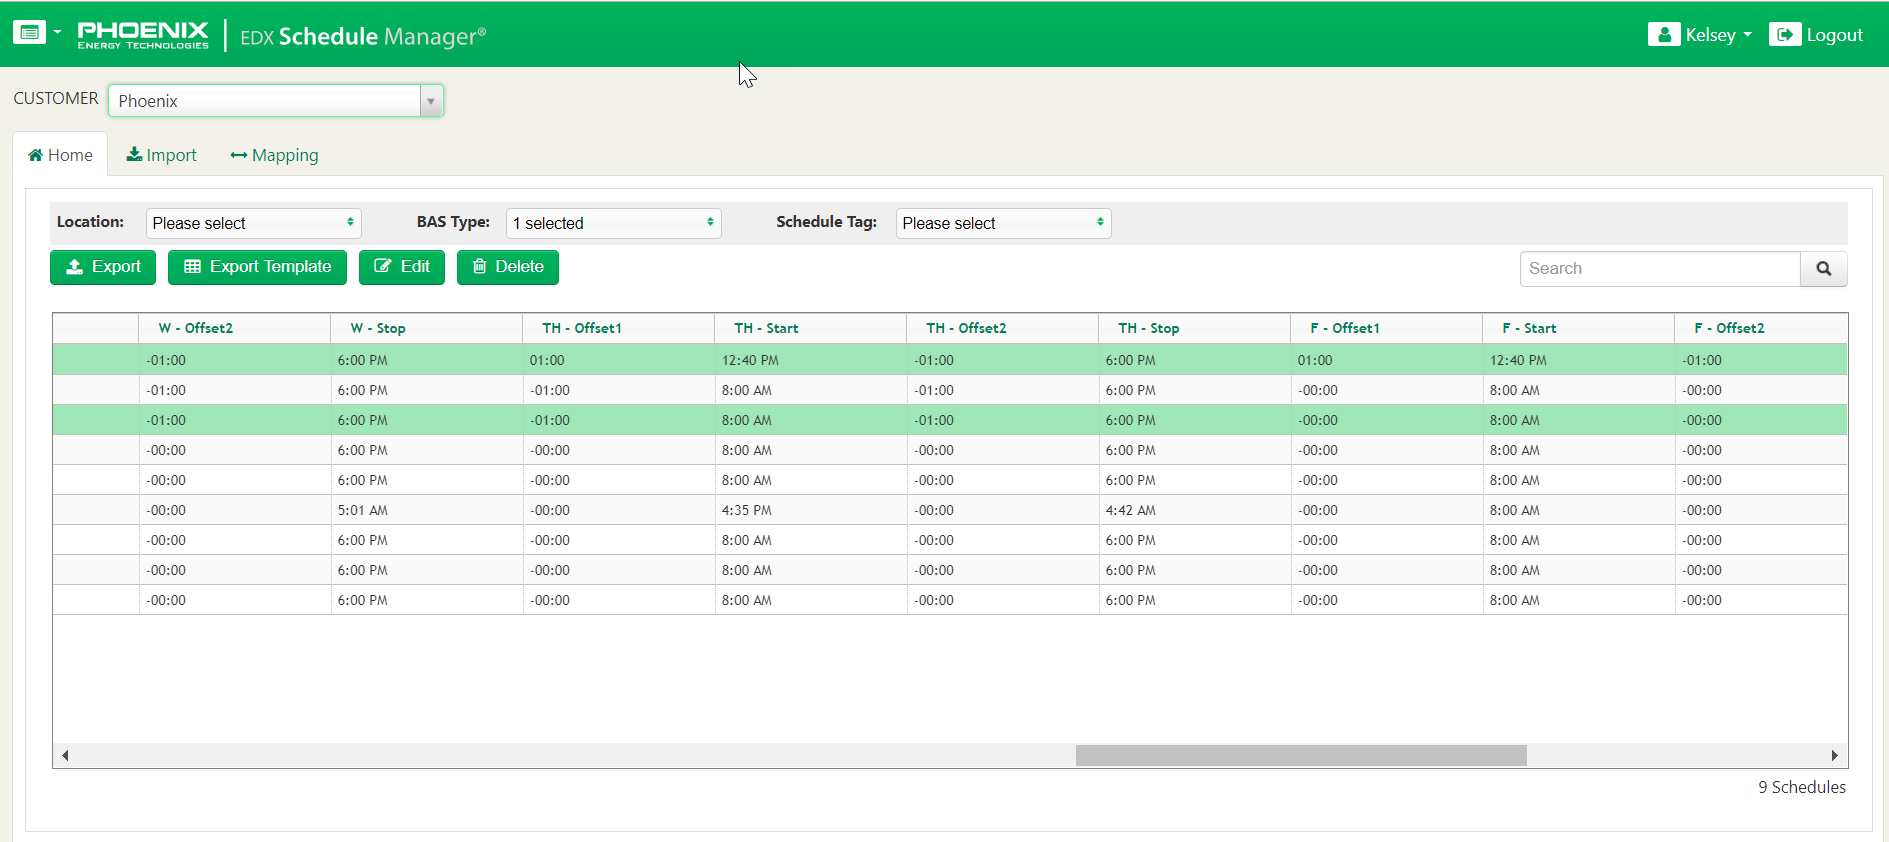 EDX Schedule Manager